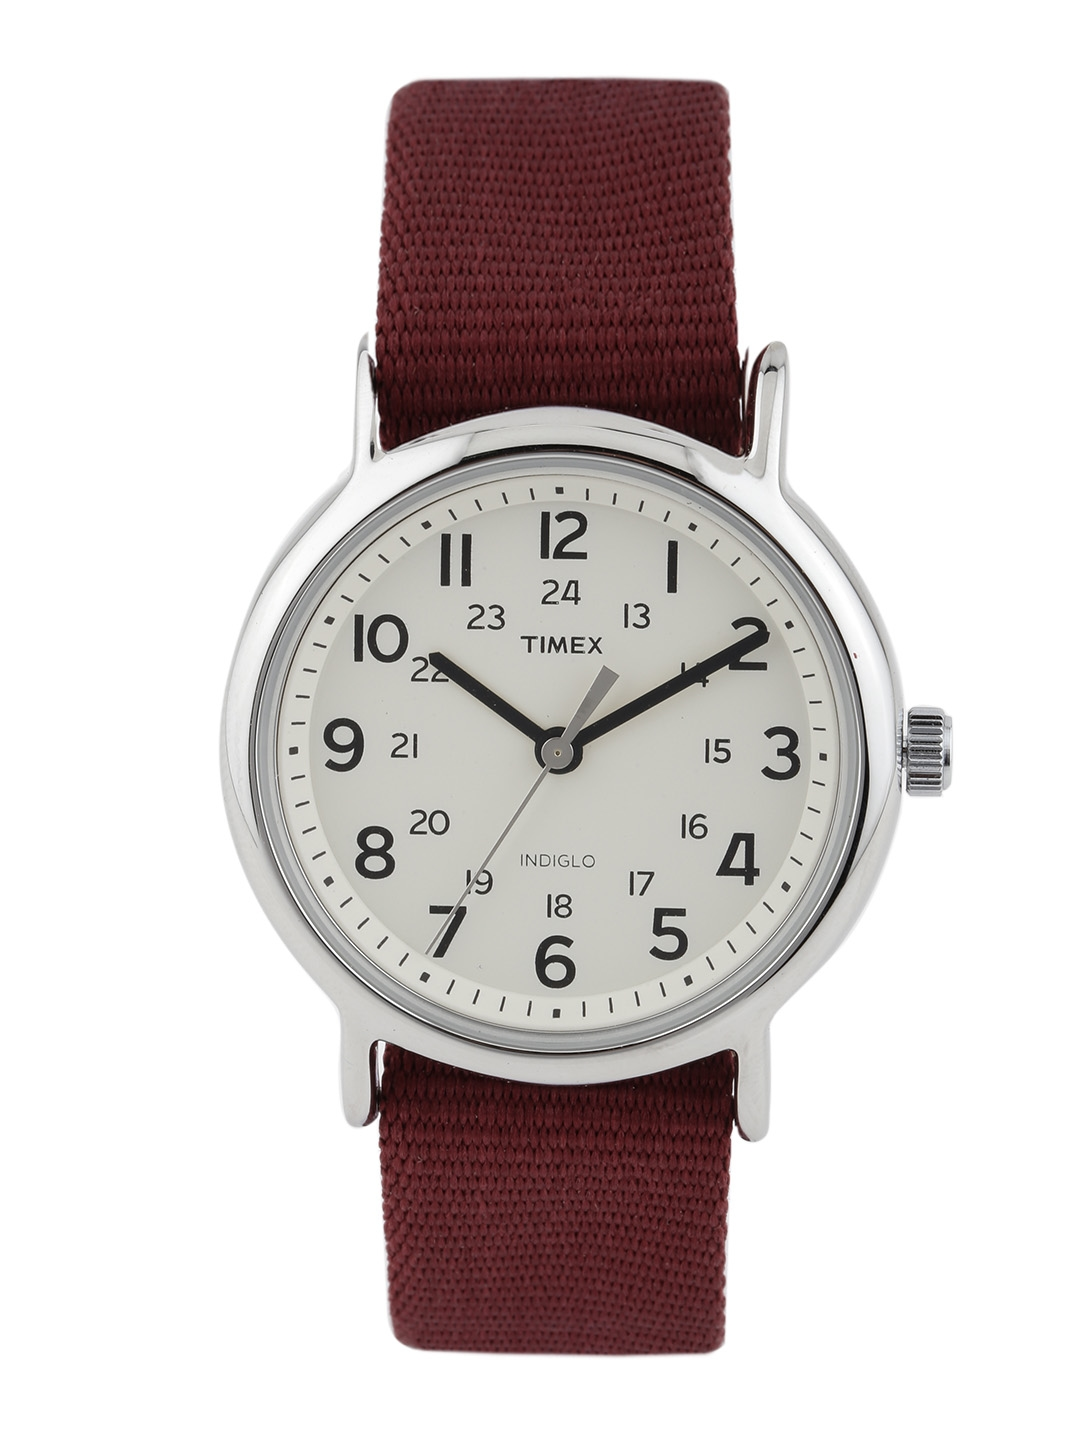 Buy timex indiglo unisex off white dial watch t2p235 watches for unisex myntra for Indiglo watches